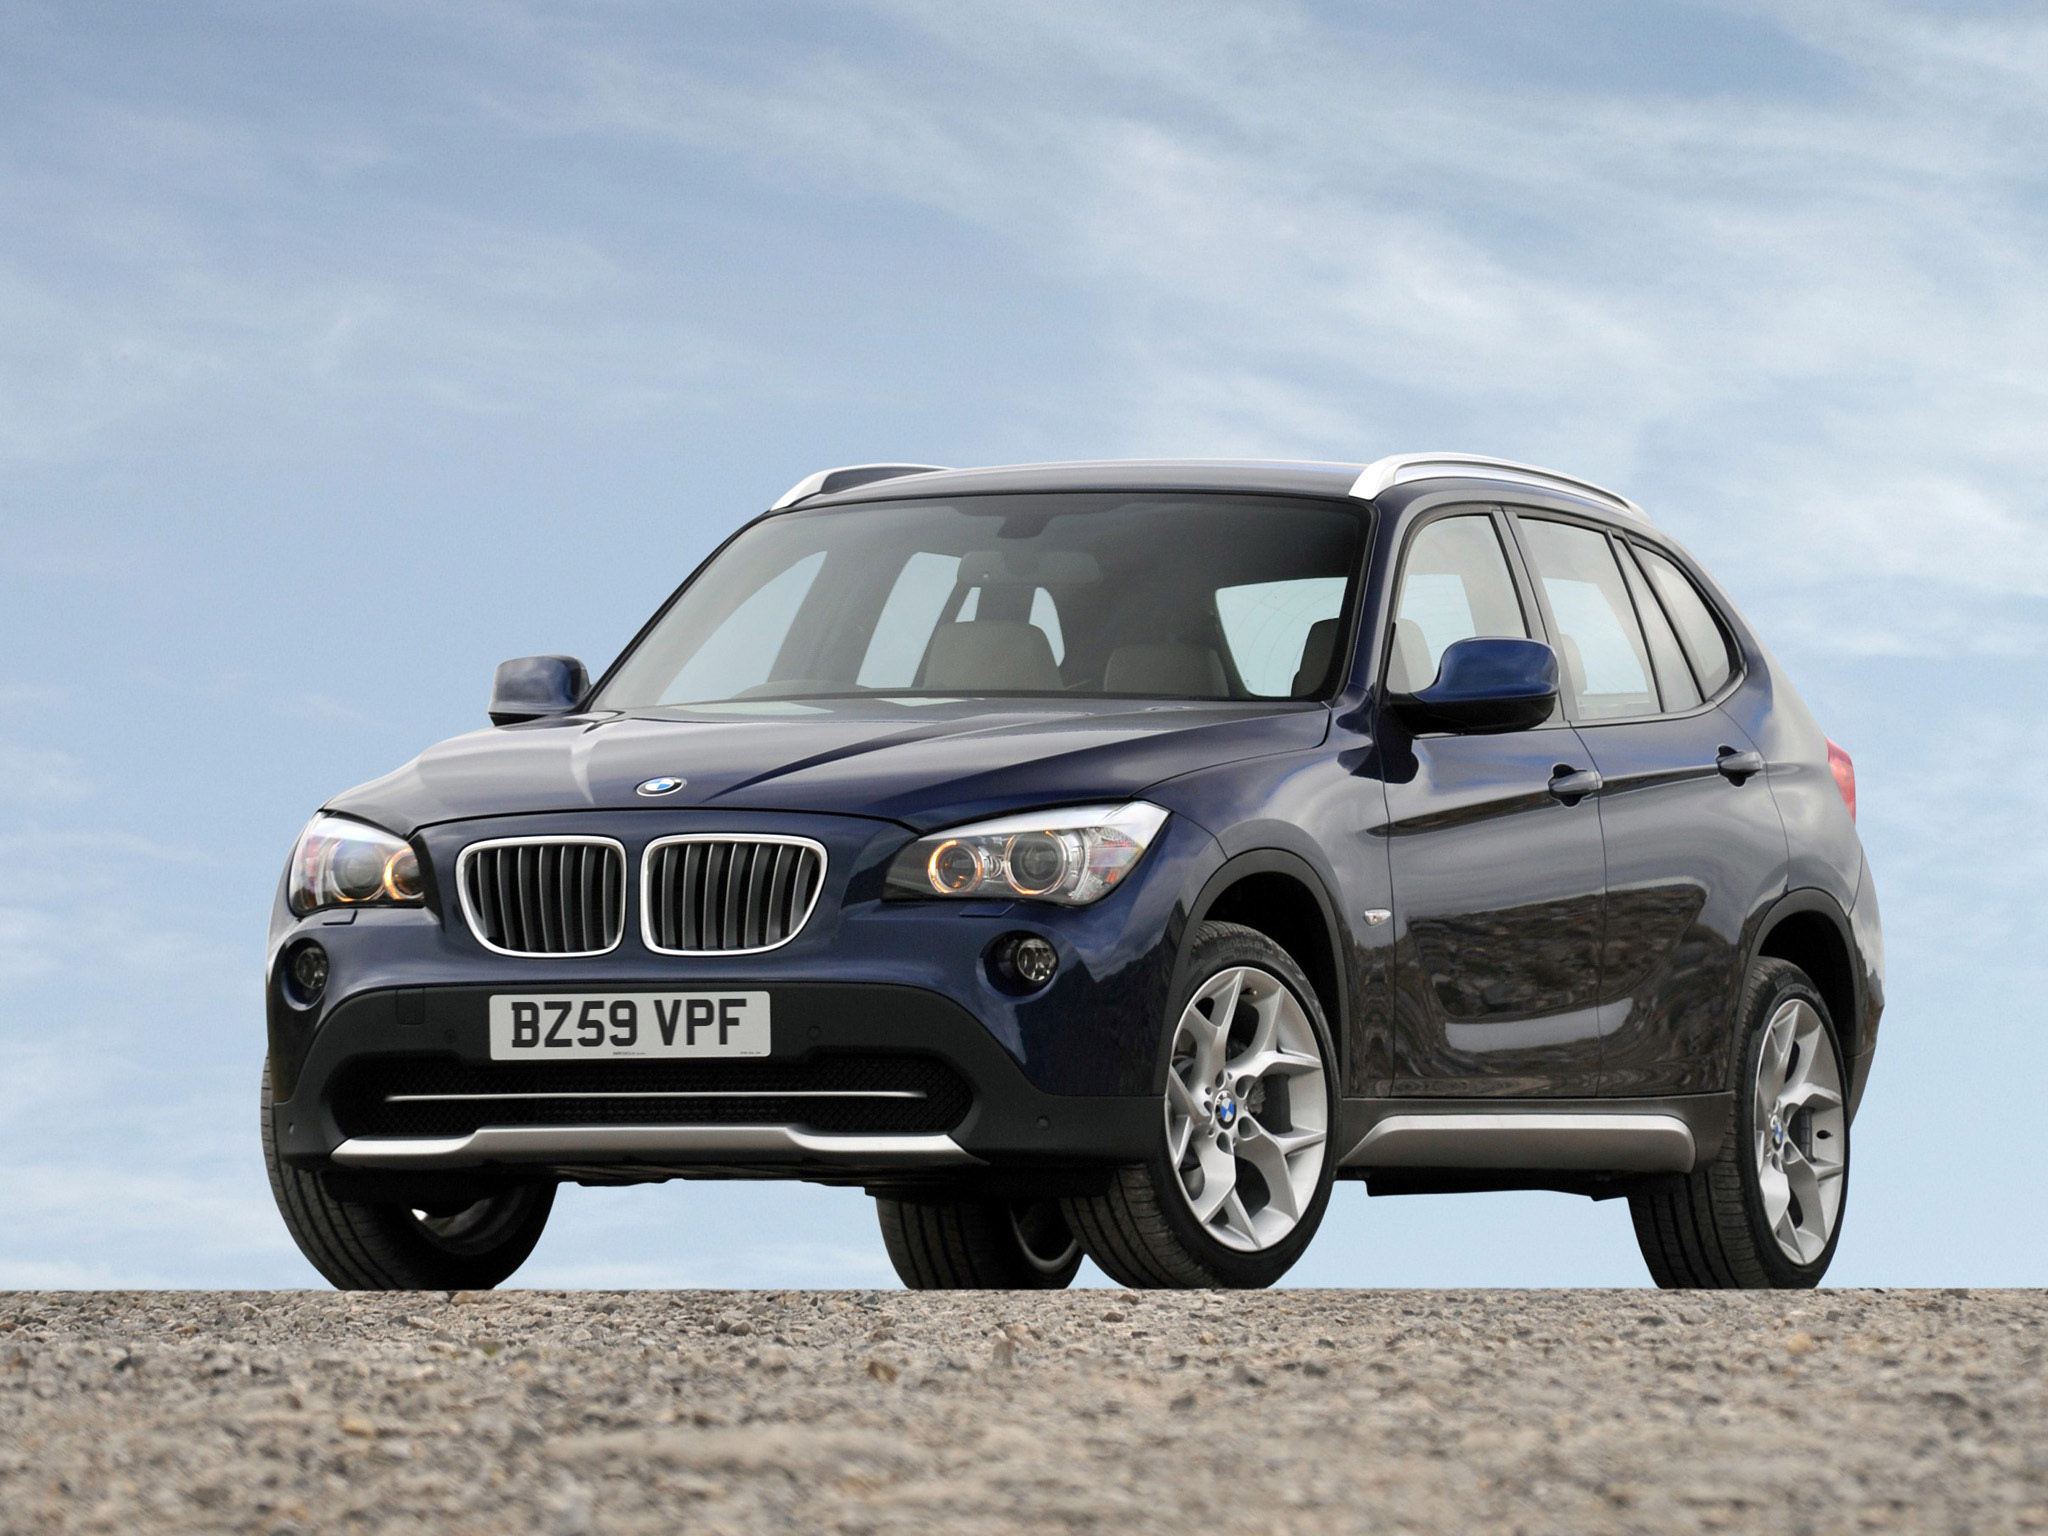 bmw x1 xdrive20d uk e84 2009 bmw x1 xdrive20d uk e84 2009. Black Bedroom Furniture Sets. Home Design Ideas